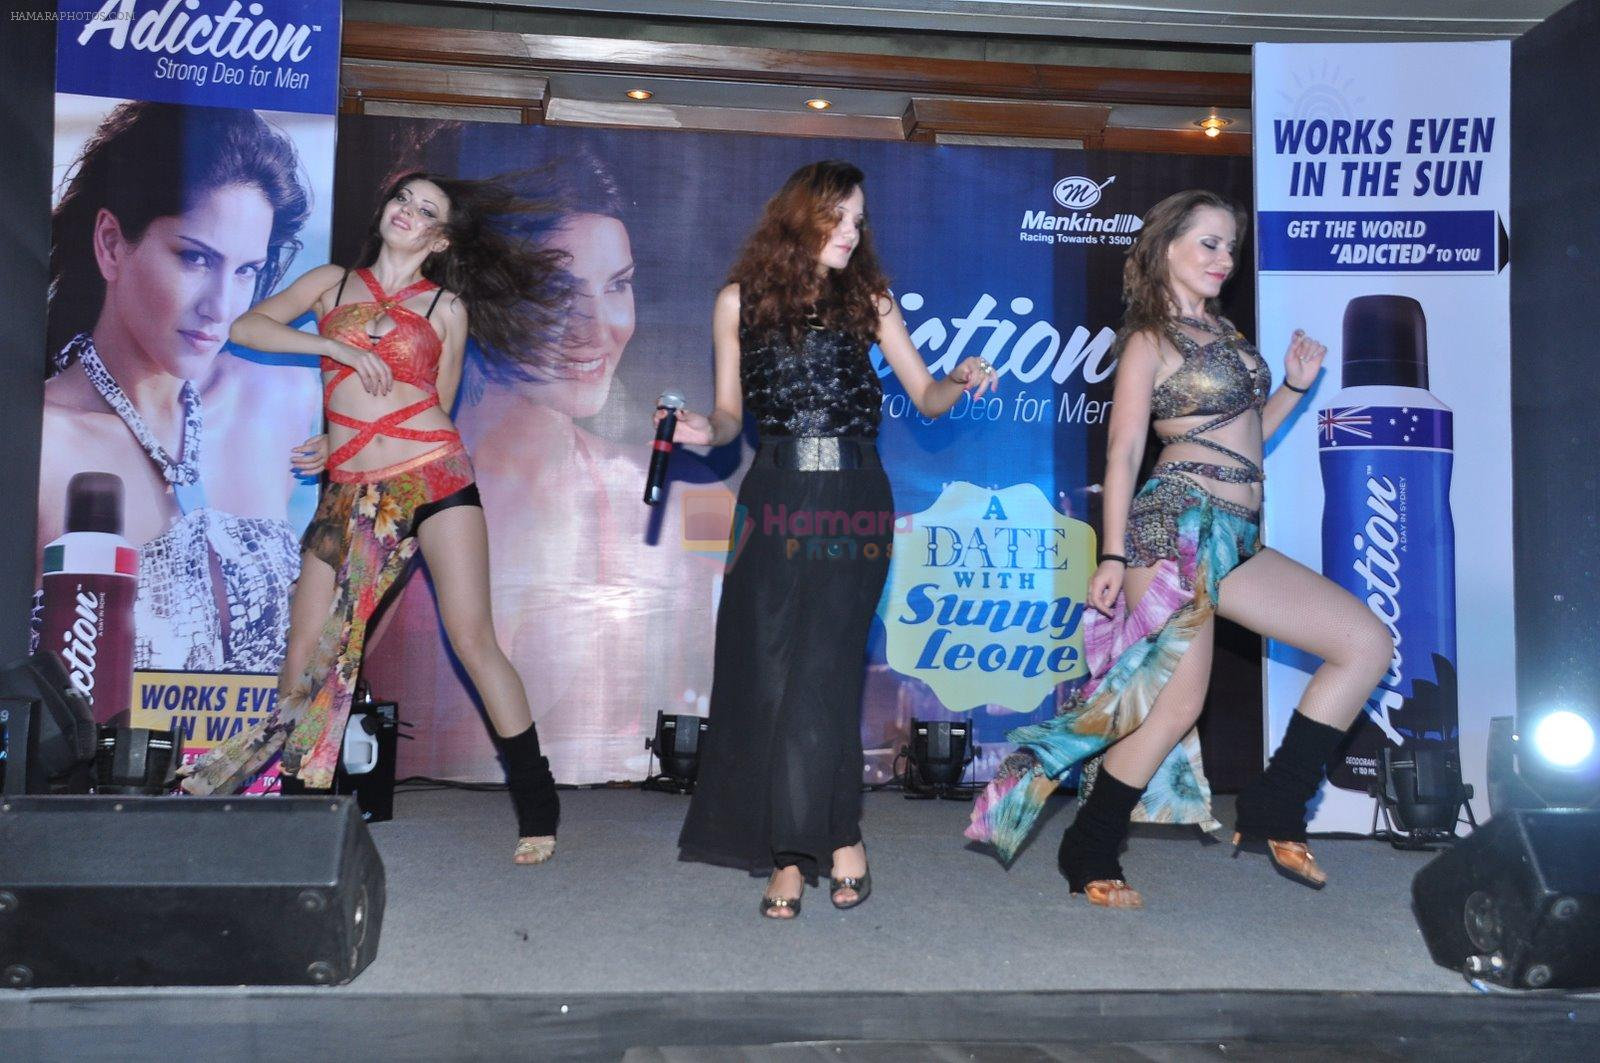 Sunny leone at addiction Deo launch in Juhu, Mumbai on 20th Dec 2014